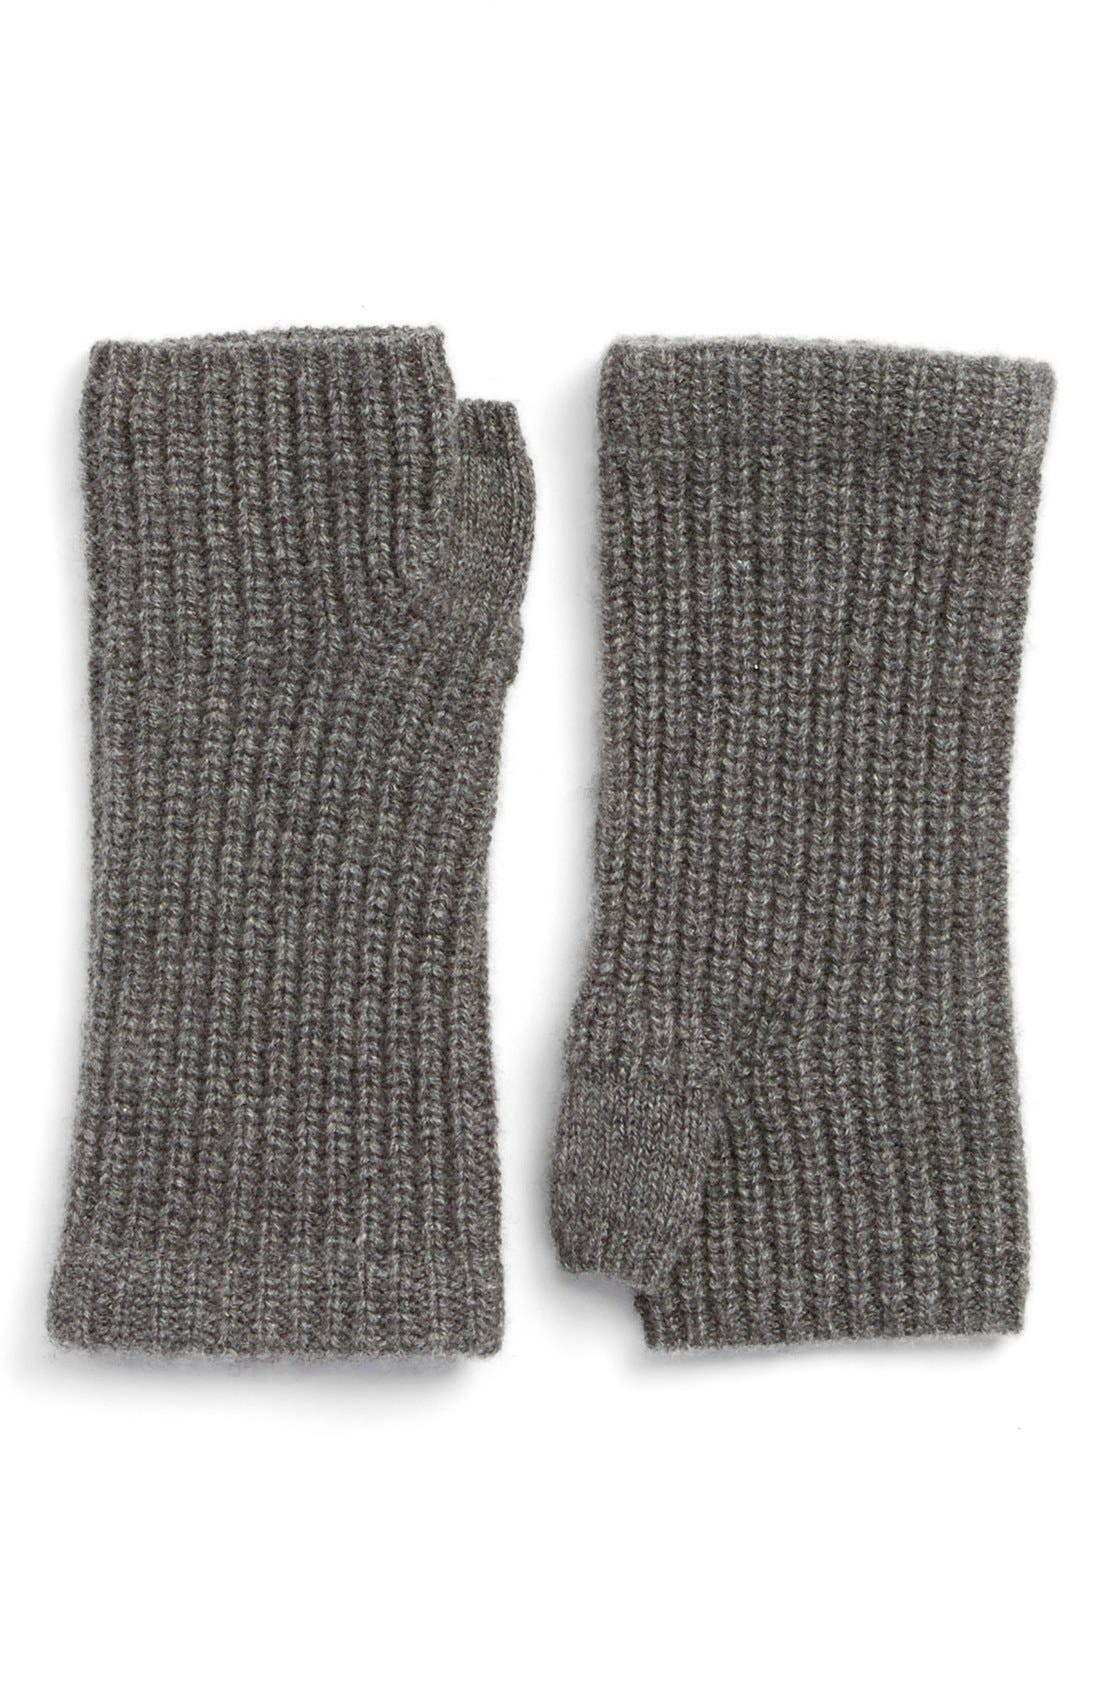 Alternate Image 1 Selected - rag & bone 'Alexis' Cashmere Fingerless Gloves